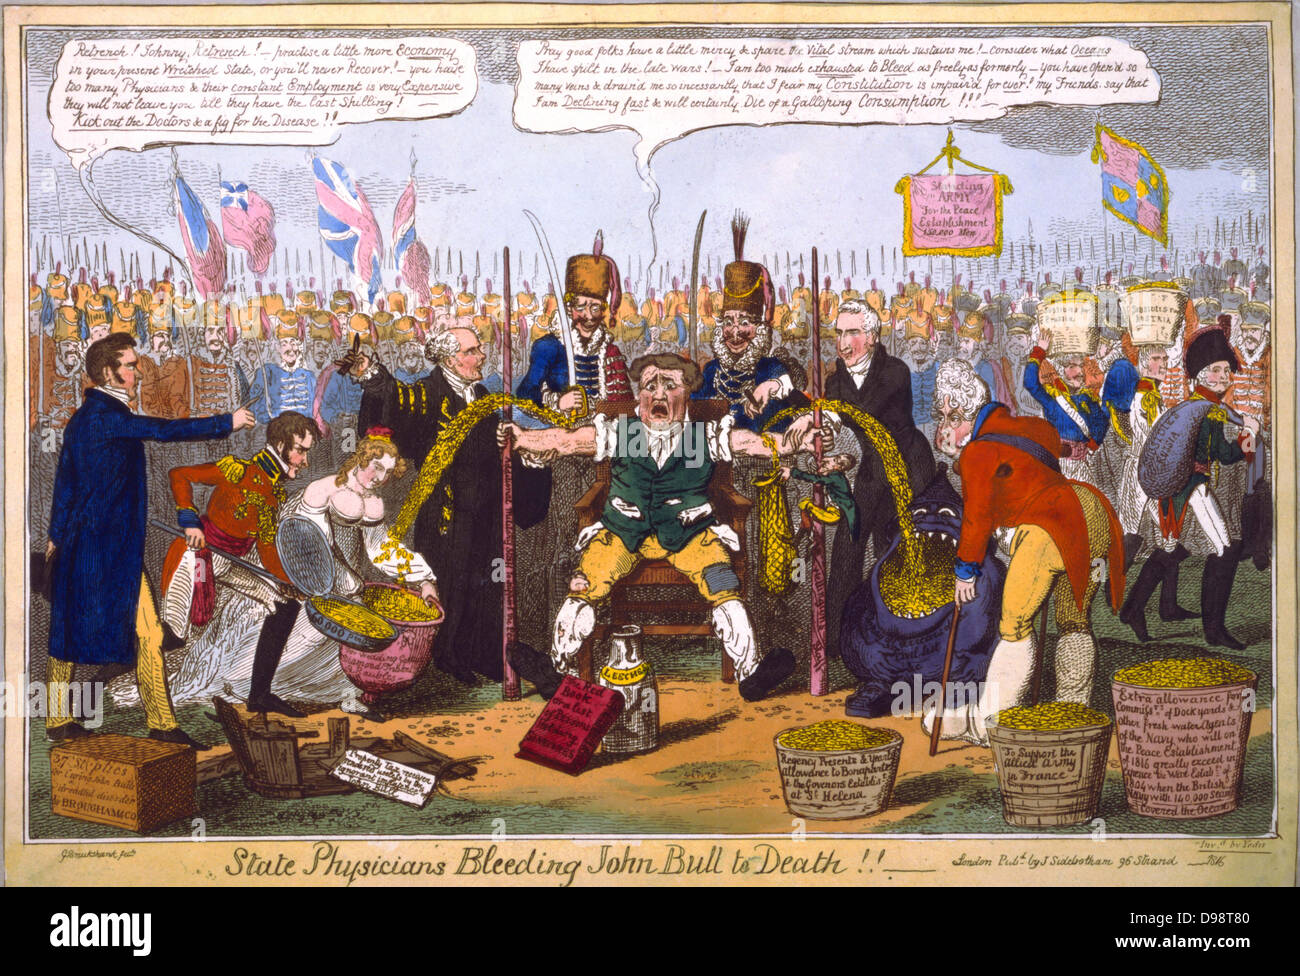 State Physicians Bleeding John Bull to Death!!, G Cruikshank cartoon 1816. From left: Lord Brougham, Prince Leopold - Stock Image